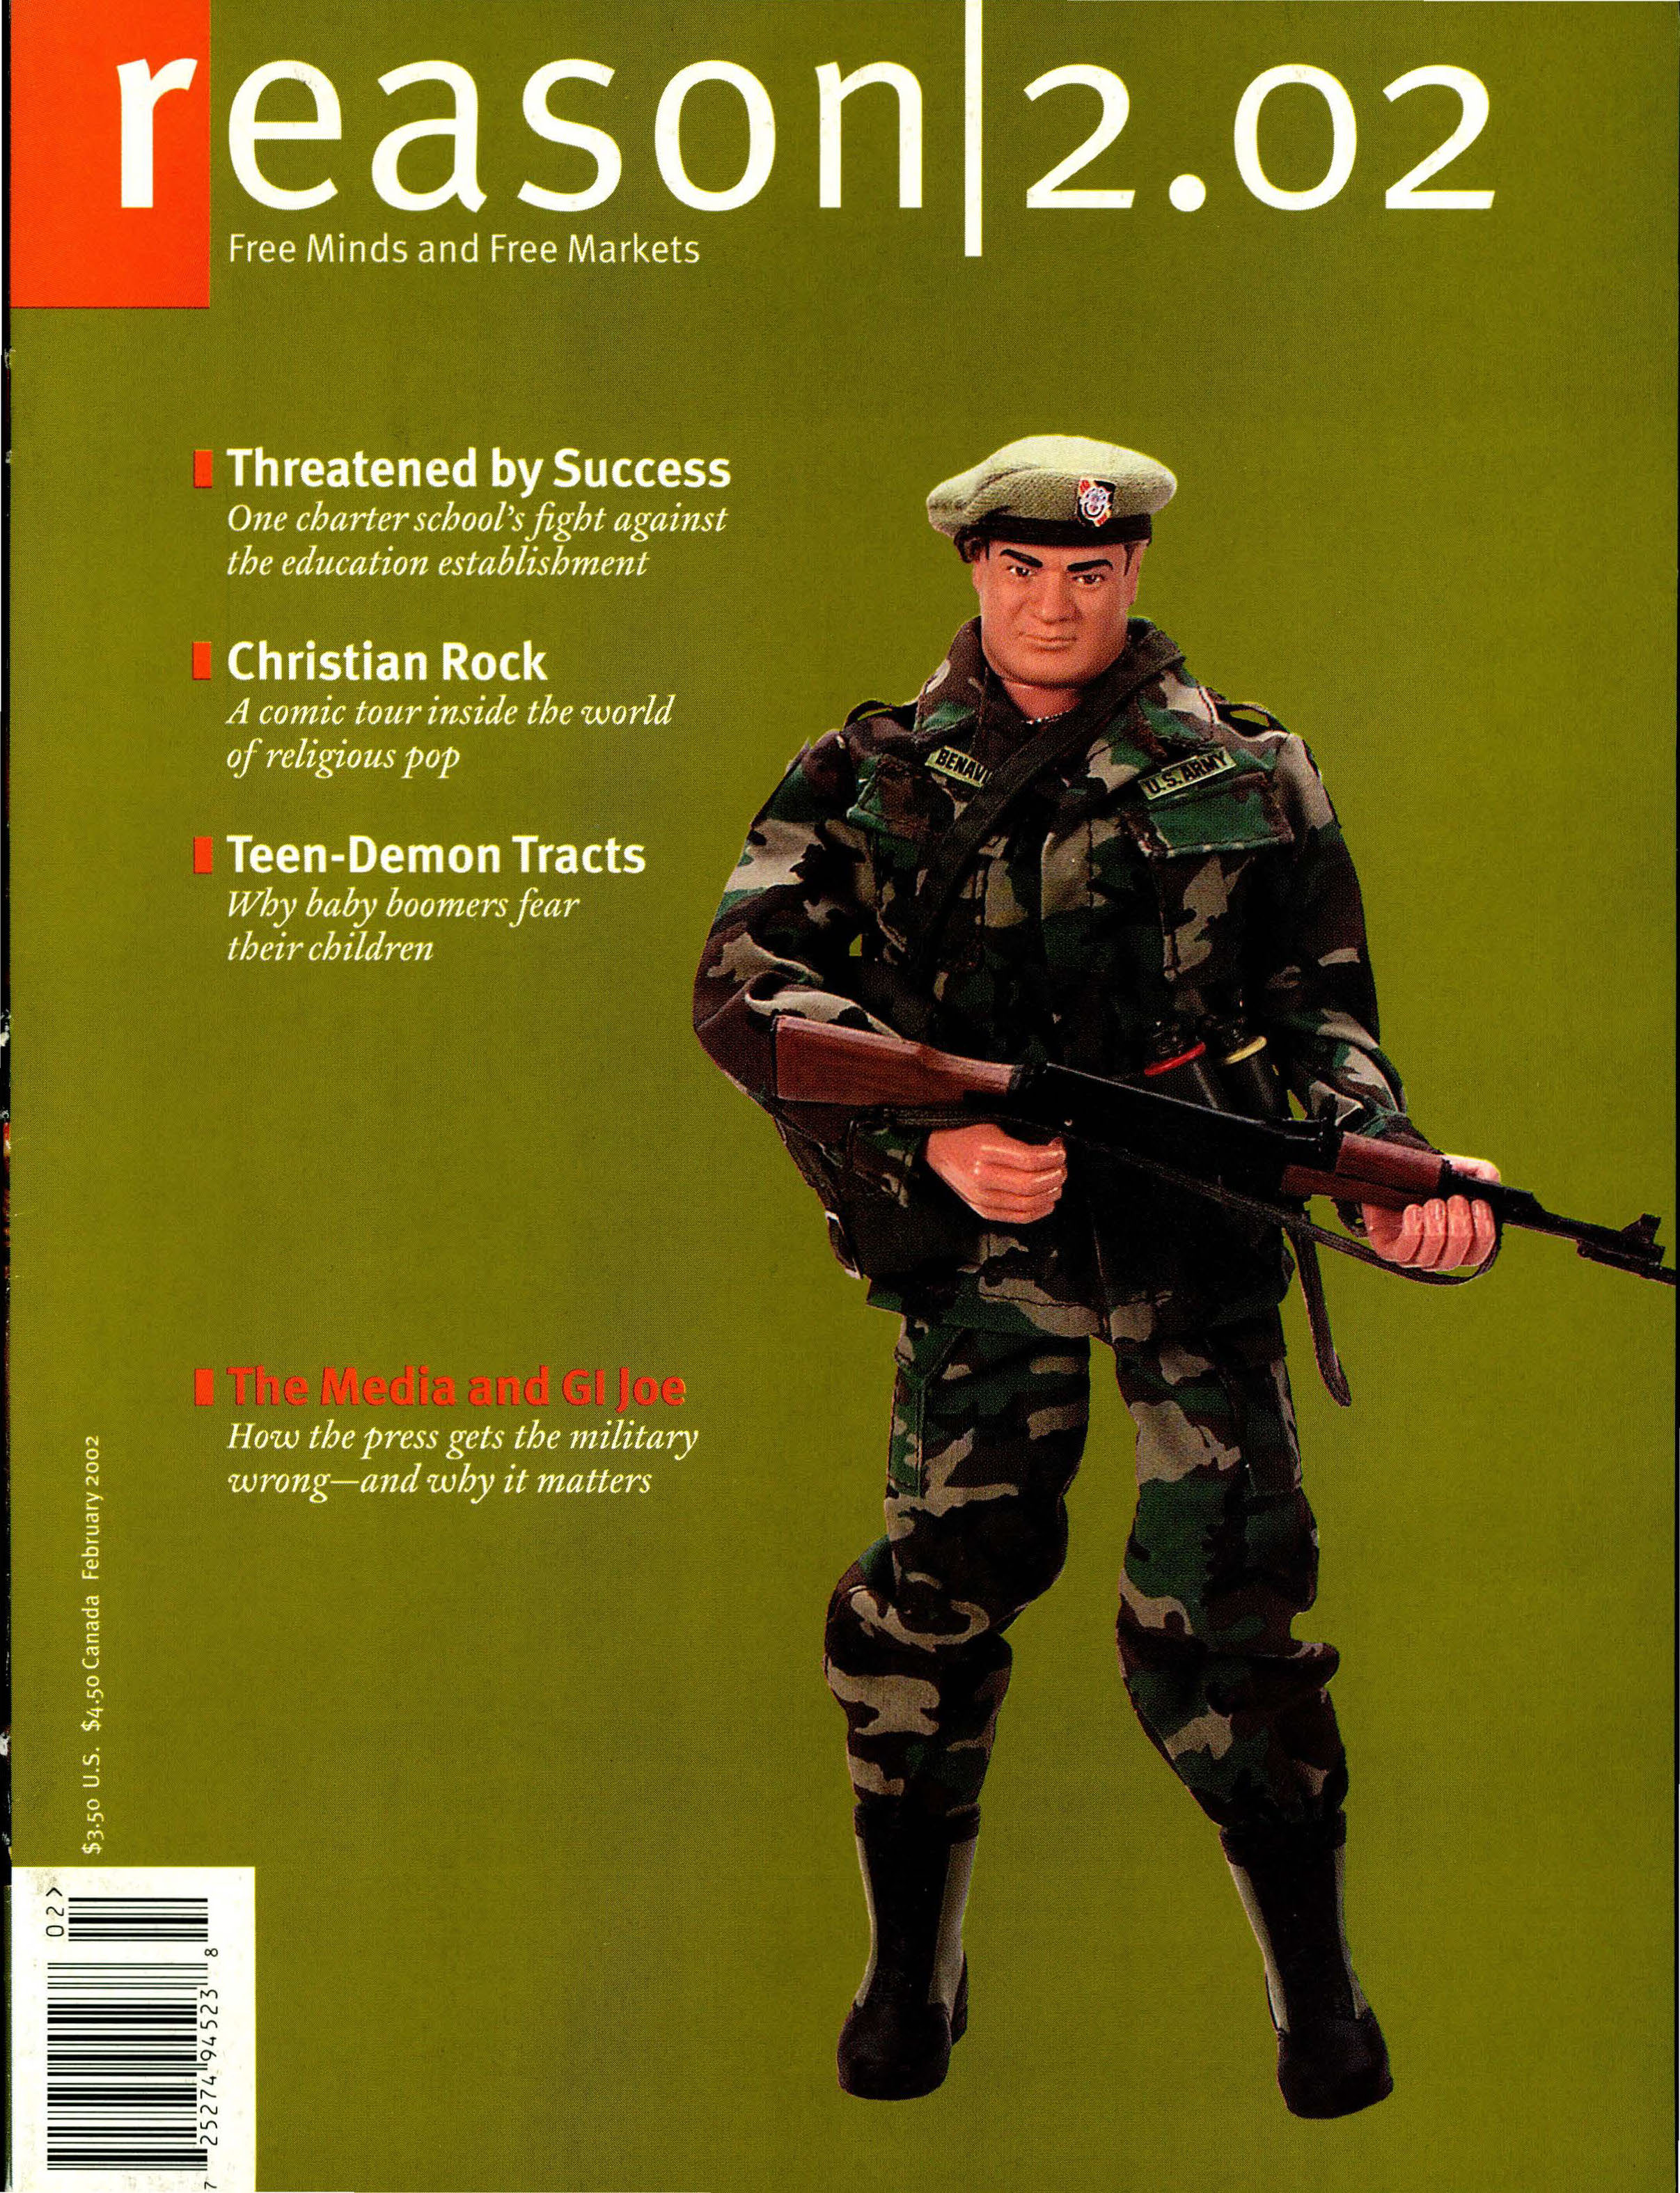 Reason Magazine, February 2002 cover image